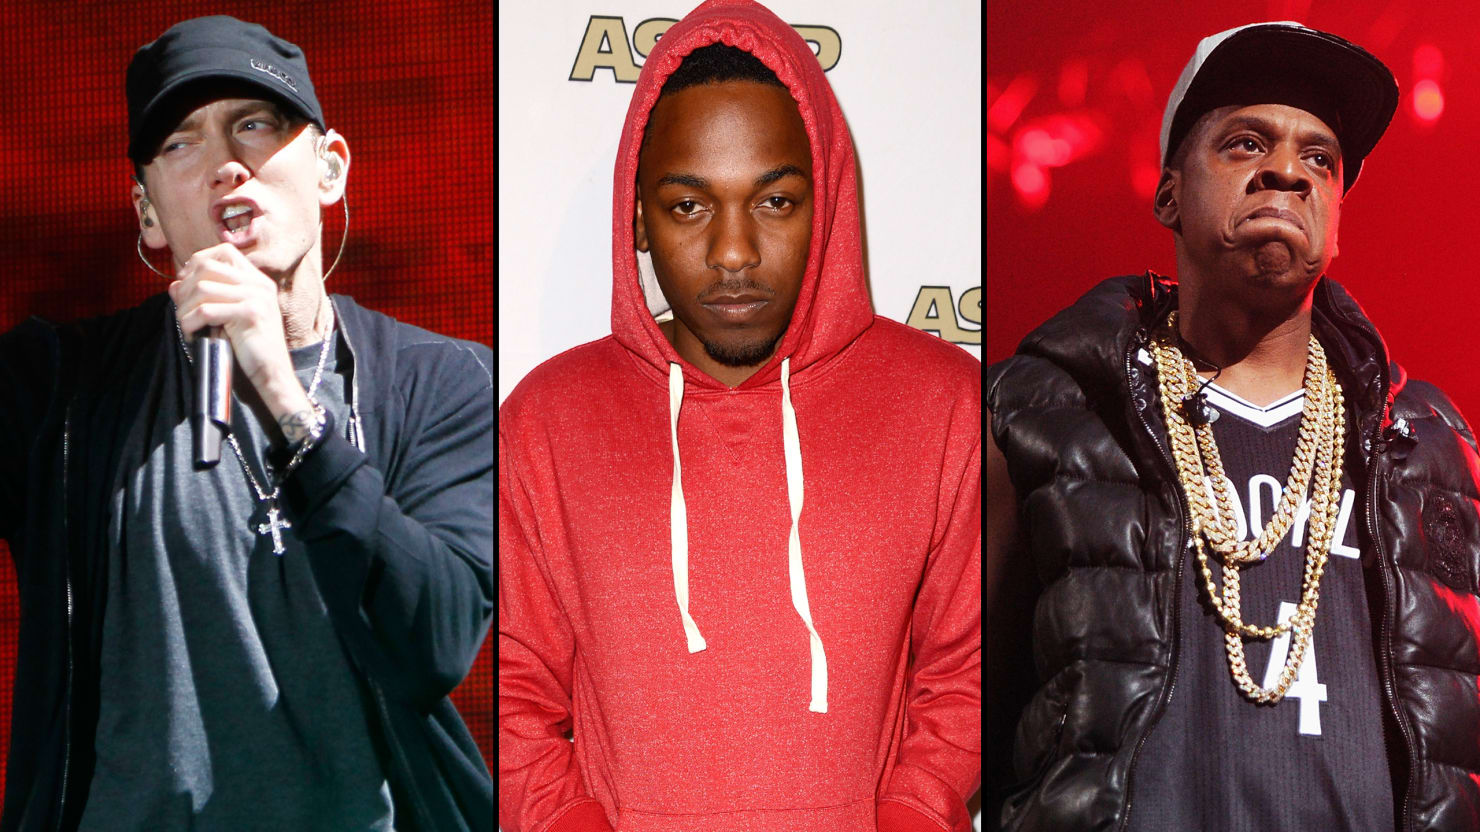 The 9 greatest rap disses kendrick lamar jay z 2pac more the world is going crazy over a new diss verse by kendrick lamar but what are the best rap disses ever malvernweather Gallery